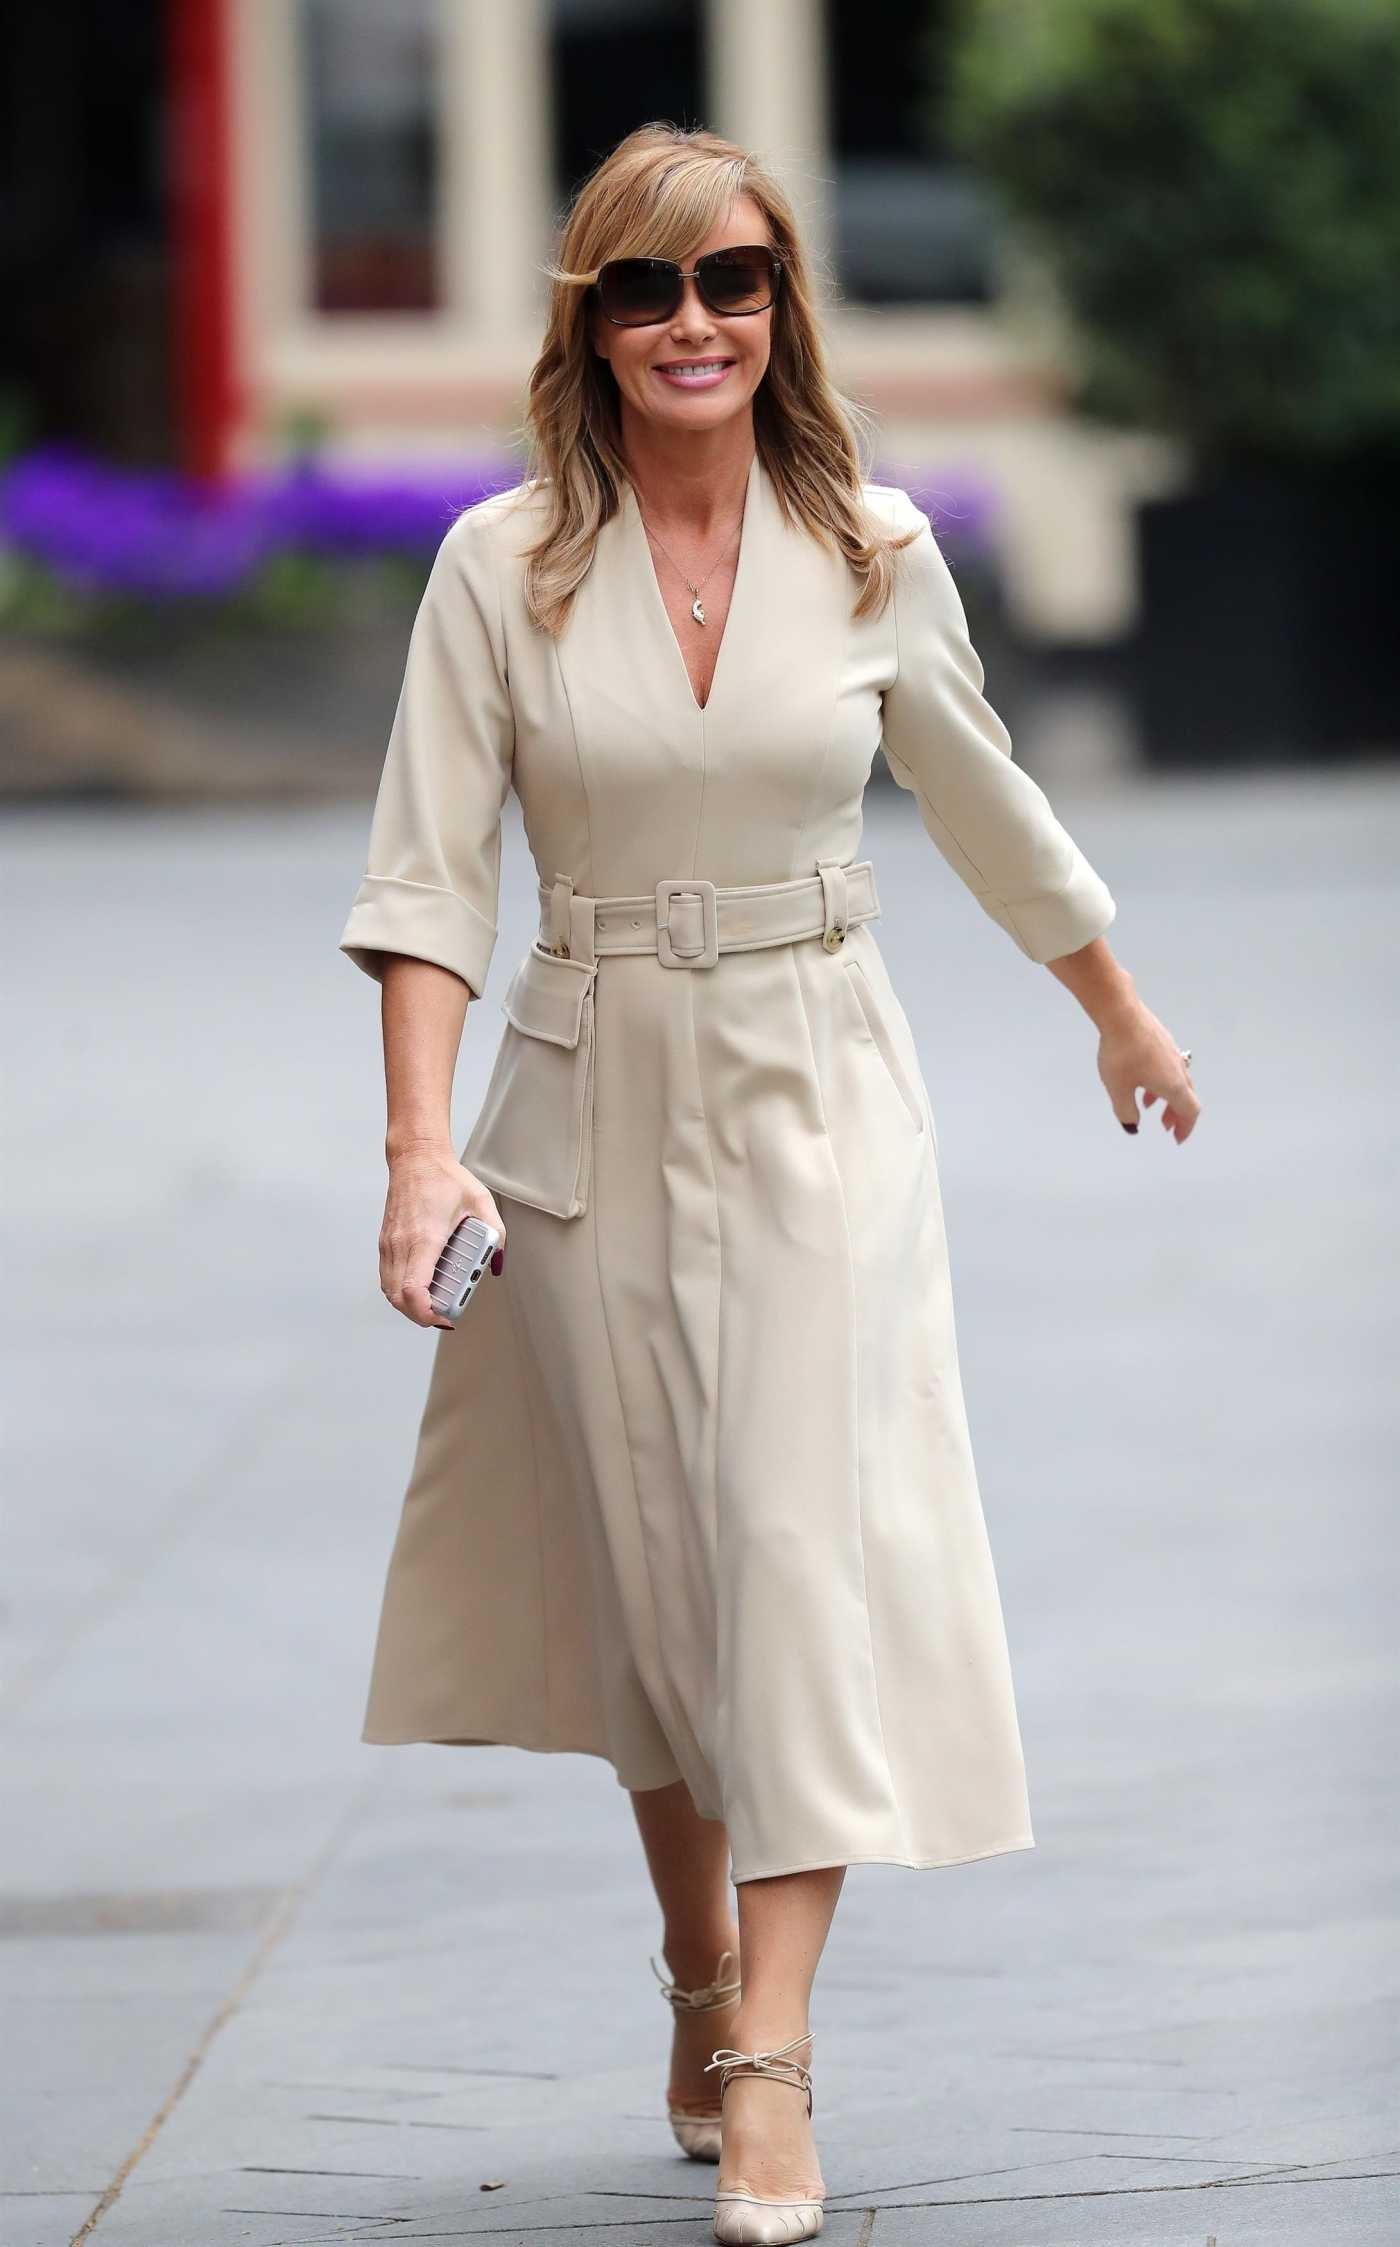 Amanda Holden in a Beige Dress Arrives at the Global Radio Studios in London 04/27/2020